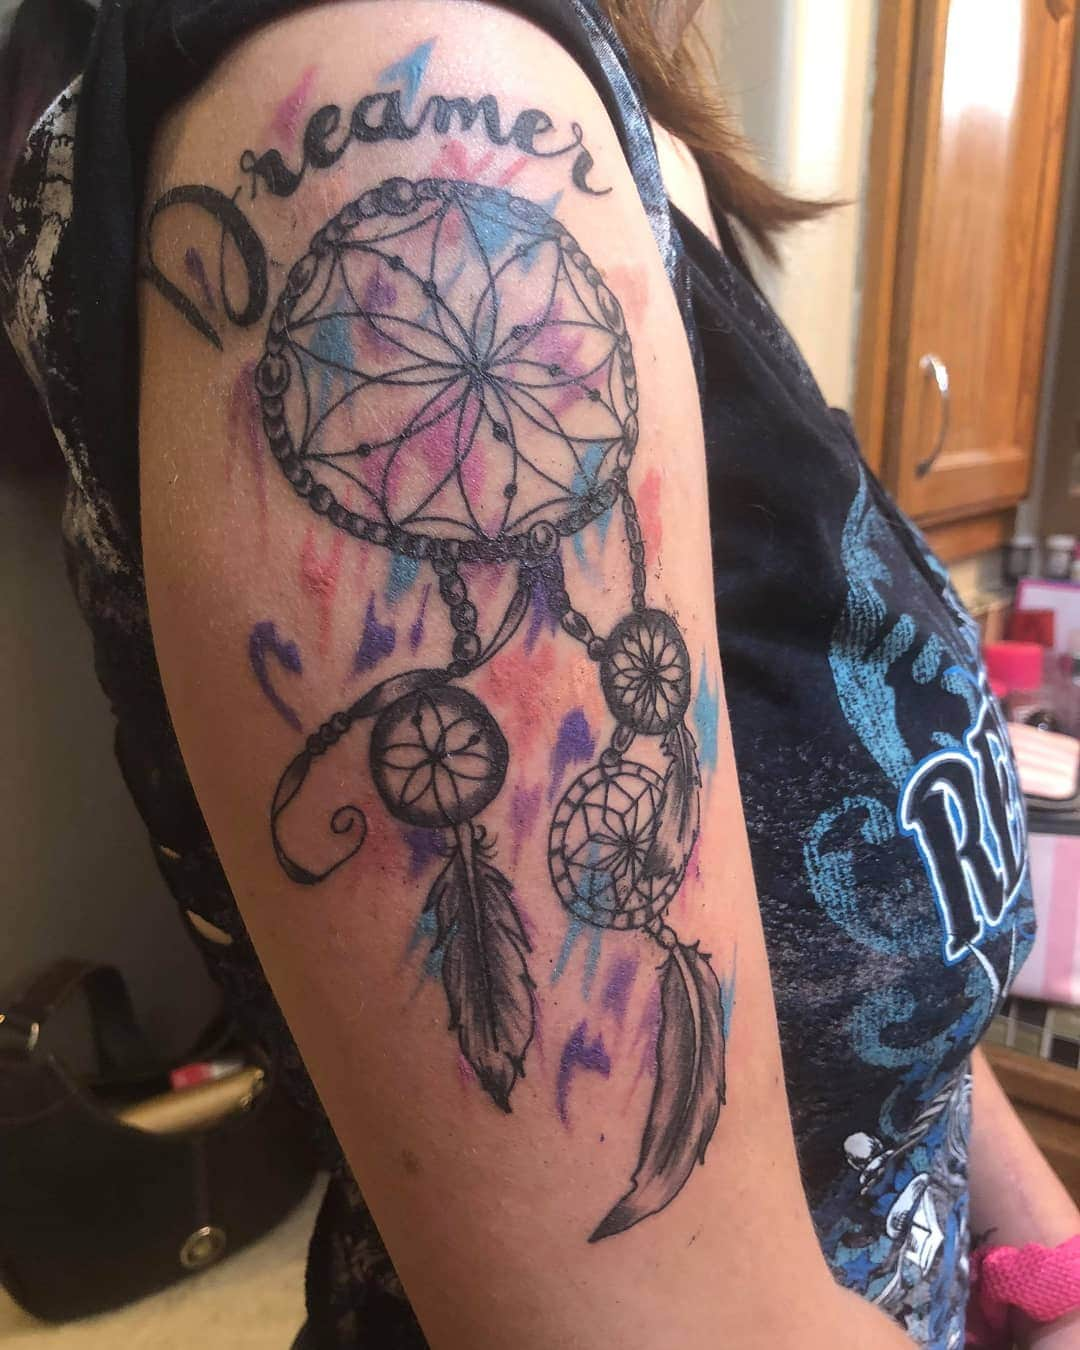 155 Best Dreamcatcher Tattoo Ideas That You Can Consider Wild